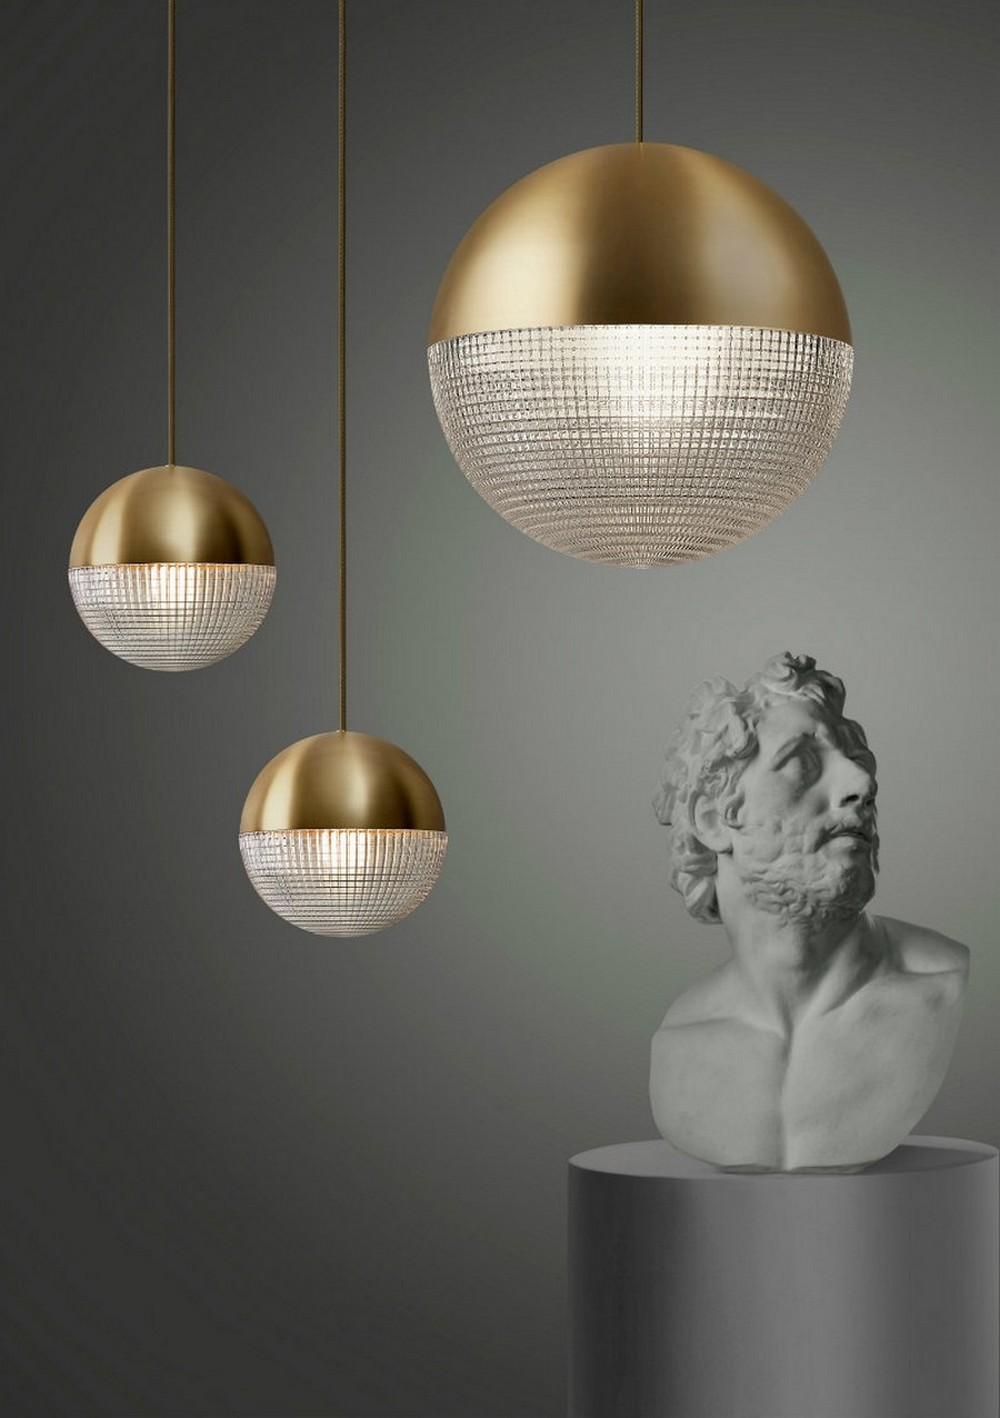 Lee Broom's Stunning Lighting Collection Will Be At NYCxDesign 2019 lee broom Lee Broom's Stunning Lighting Collection Will Be At NYCxDesign 2019 Lee Brooms Stunning Lighting Collection Will Be At NYCxDesign 2019 5